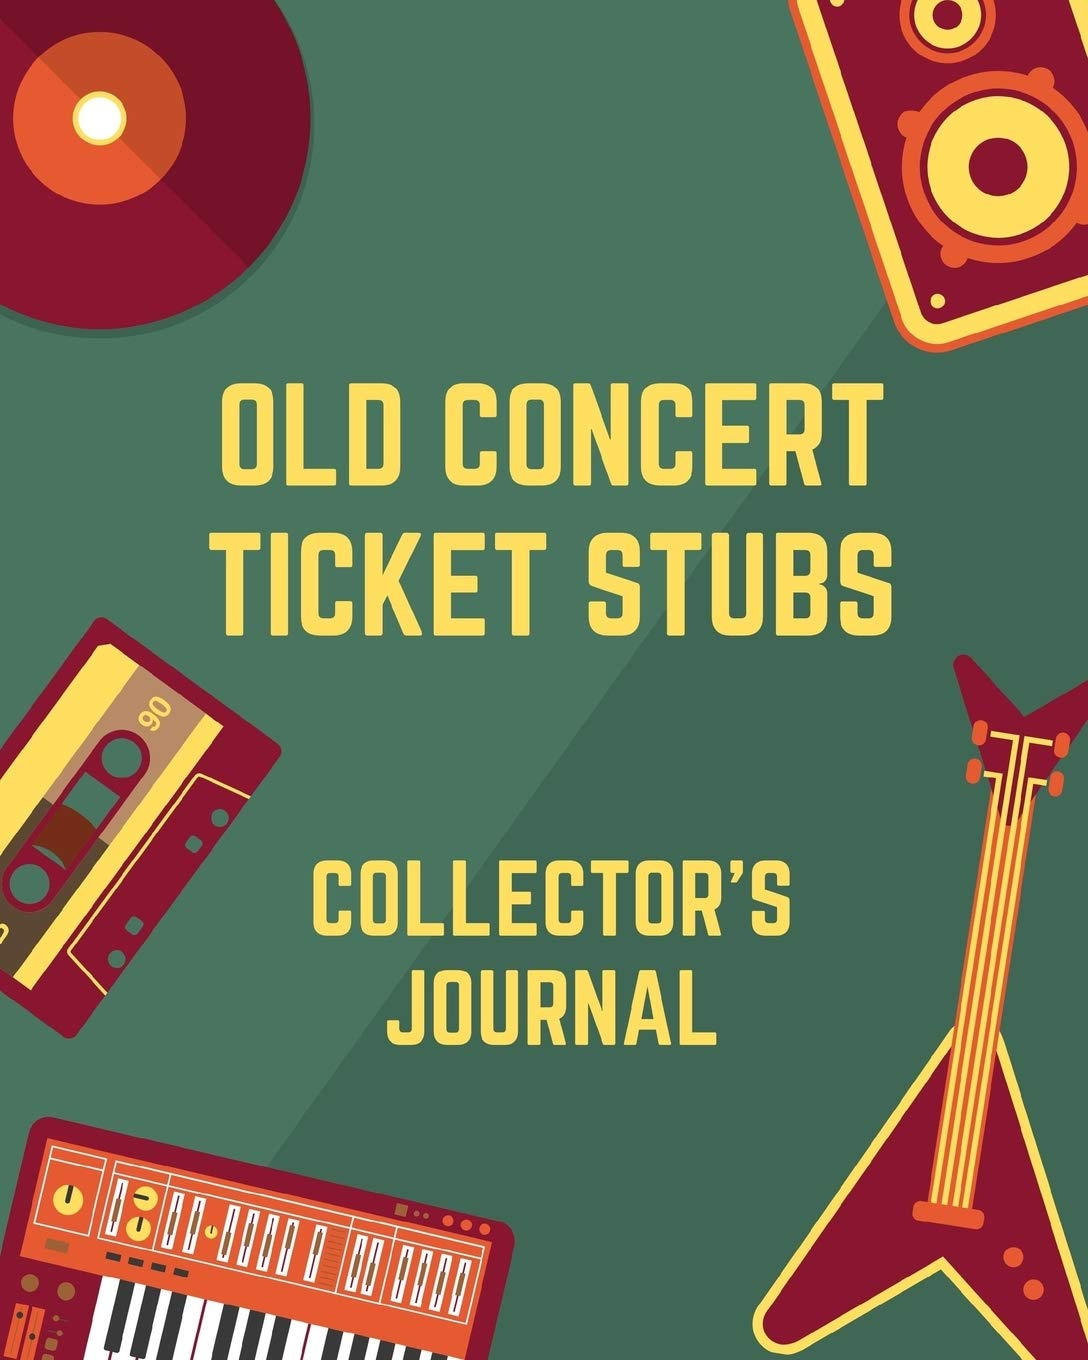 Download Old Concert Ticket Stubs Collector's Journal: Ticket Stub Diary Collection    Ticket Date   Details of The Tickets   Purch...